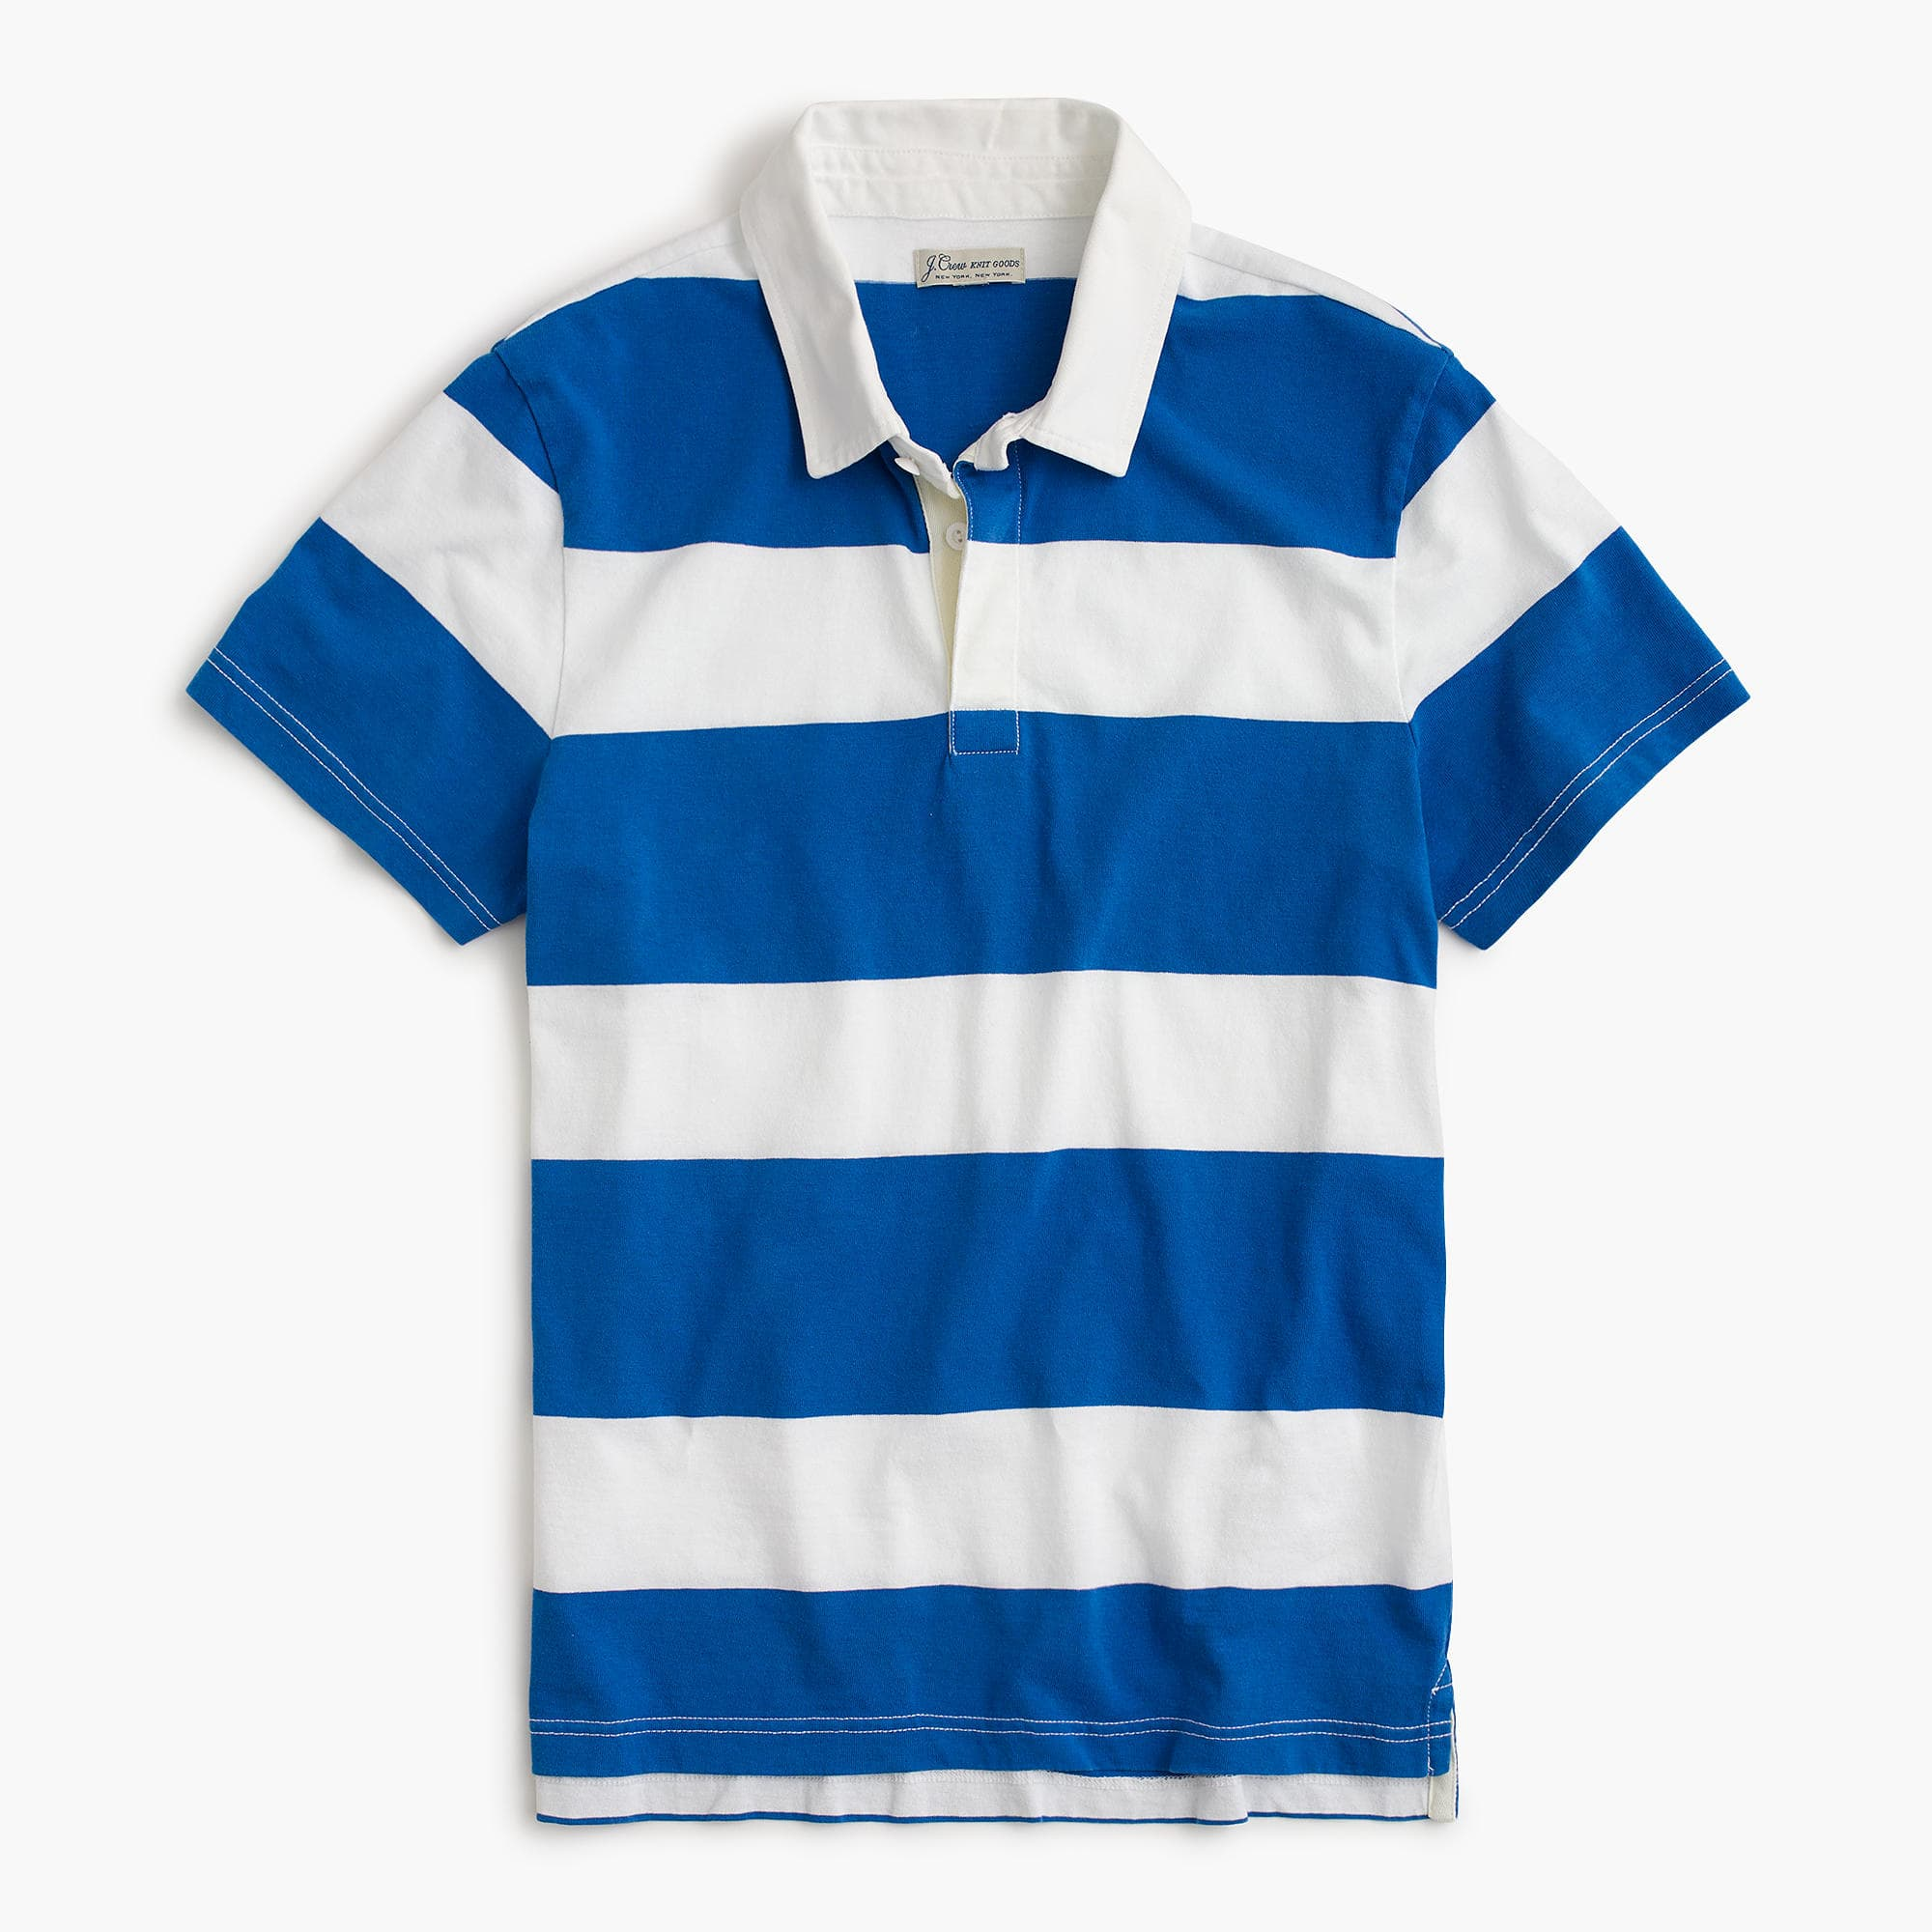 Rugby Polo Shirt in Blue and White Wide Stripes from J. Crew